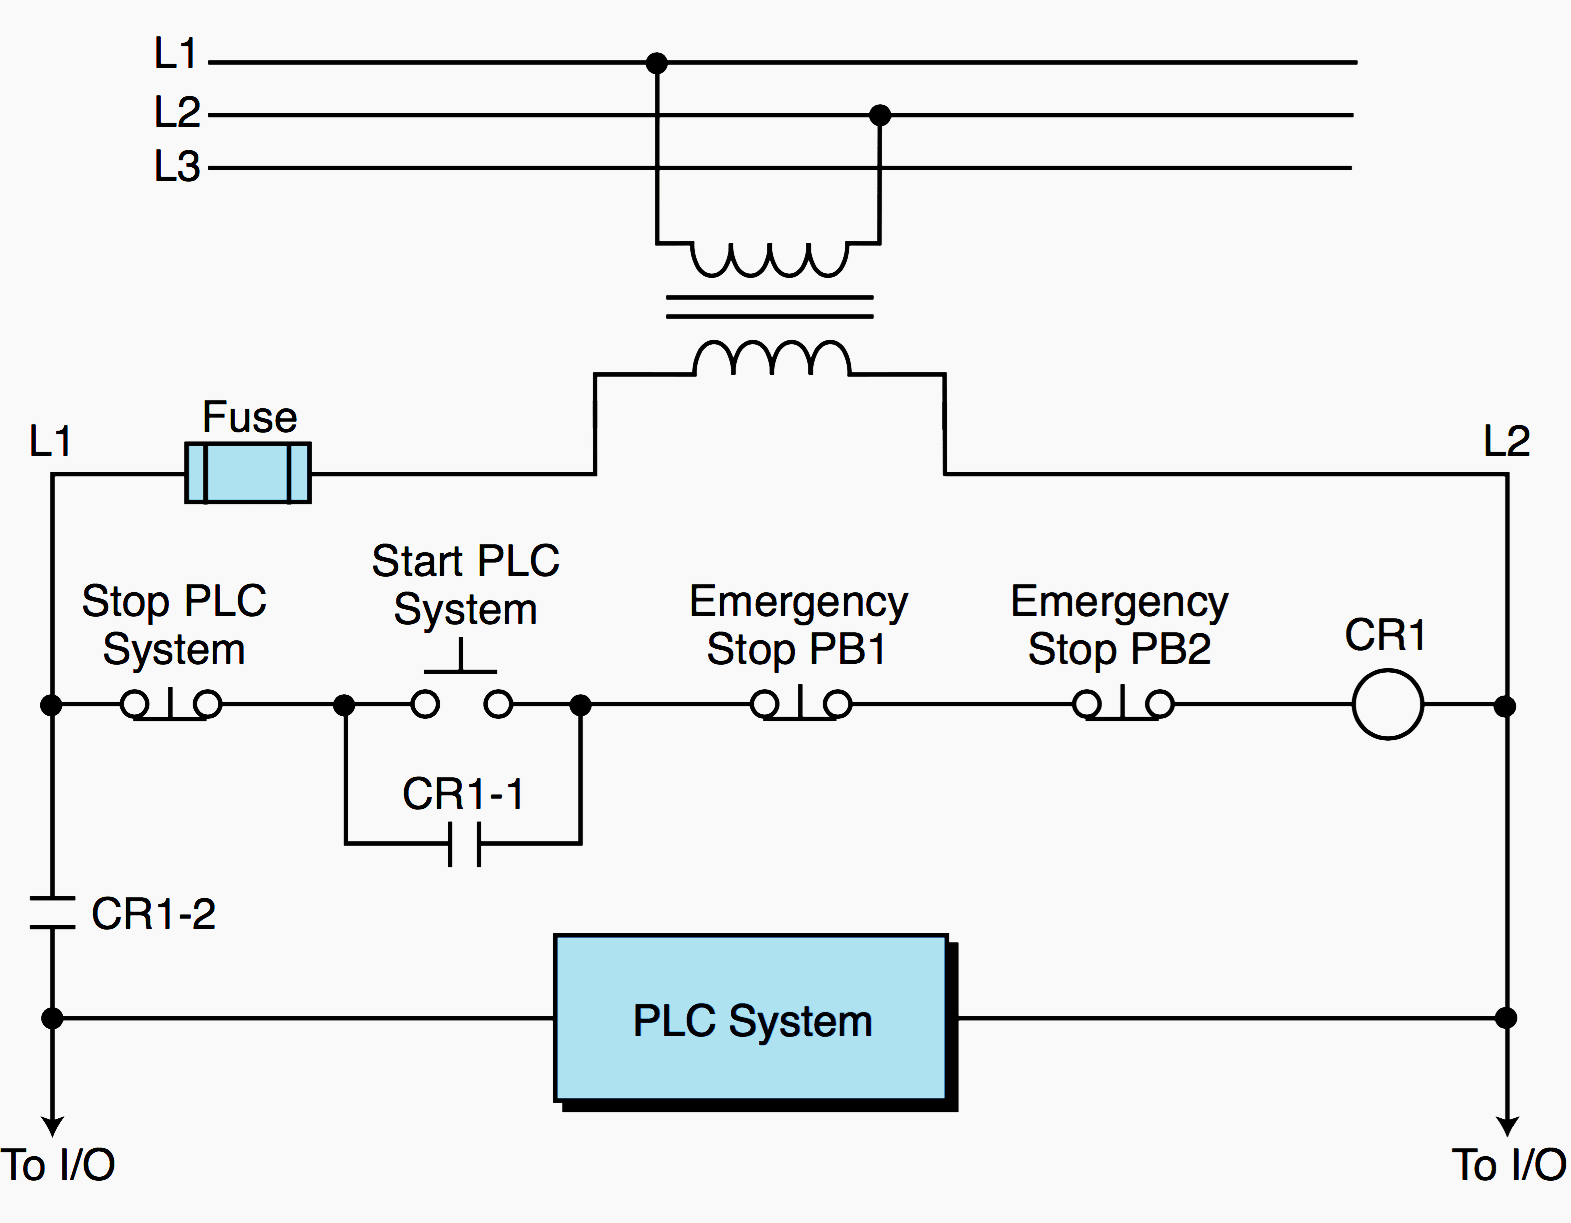 hight resolution of emergency circuits hardwired to the plc system